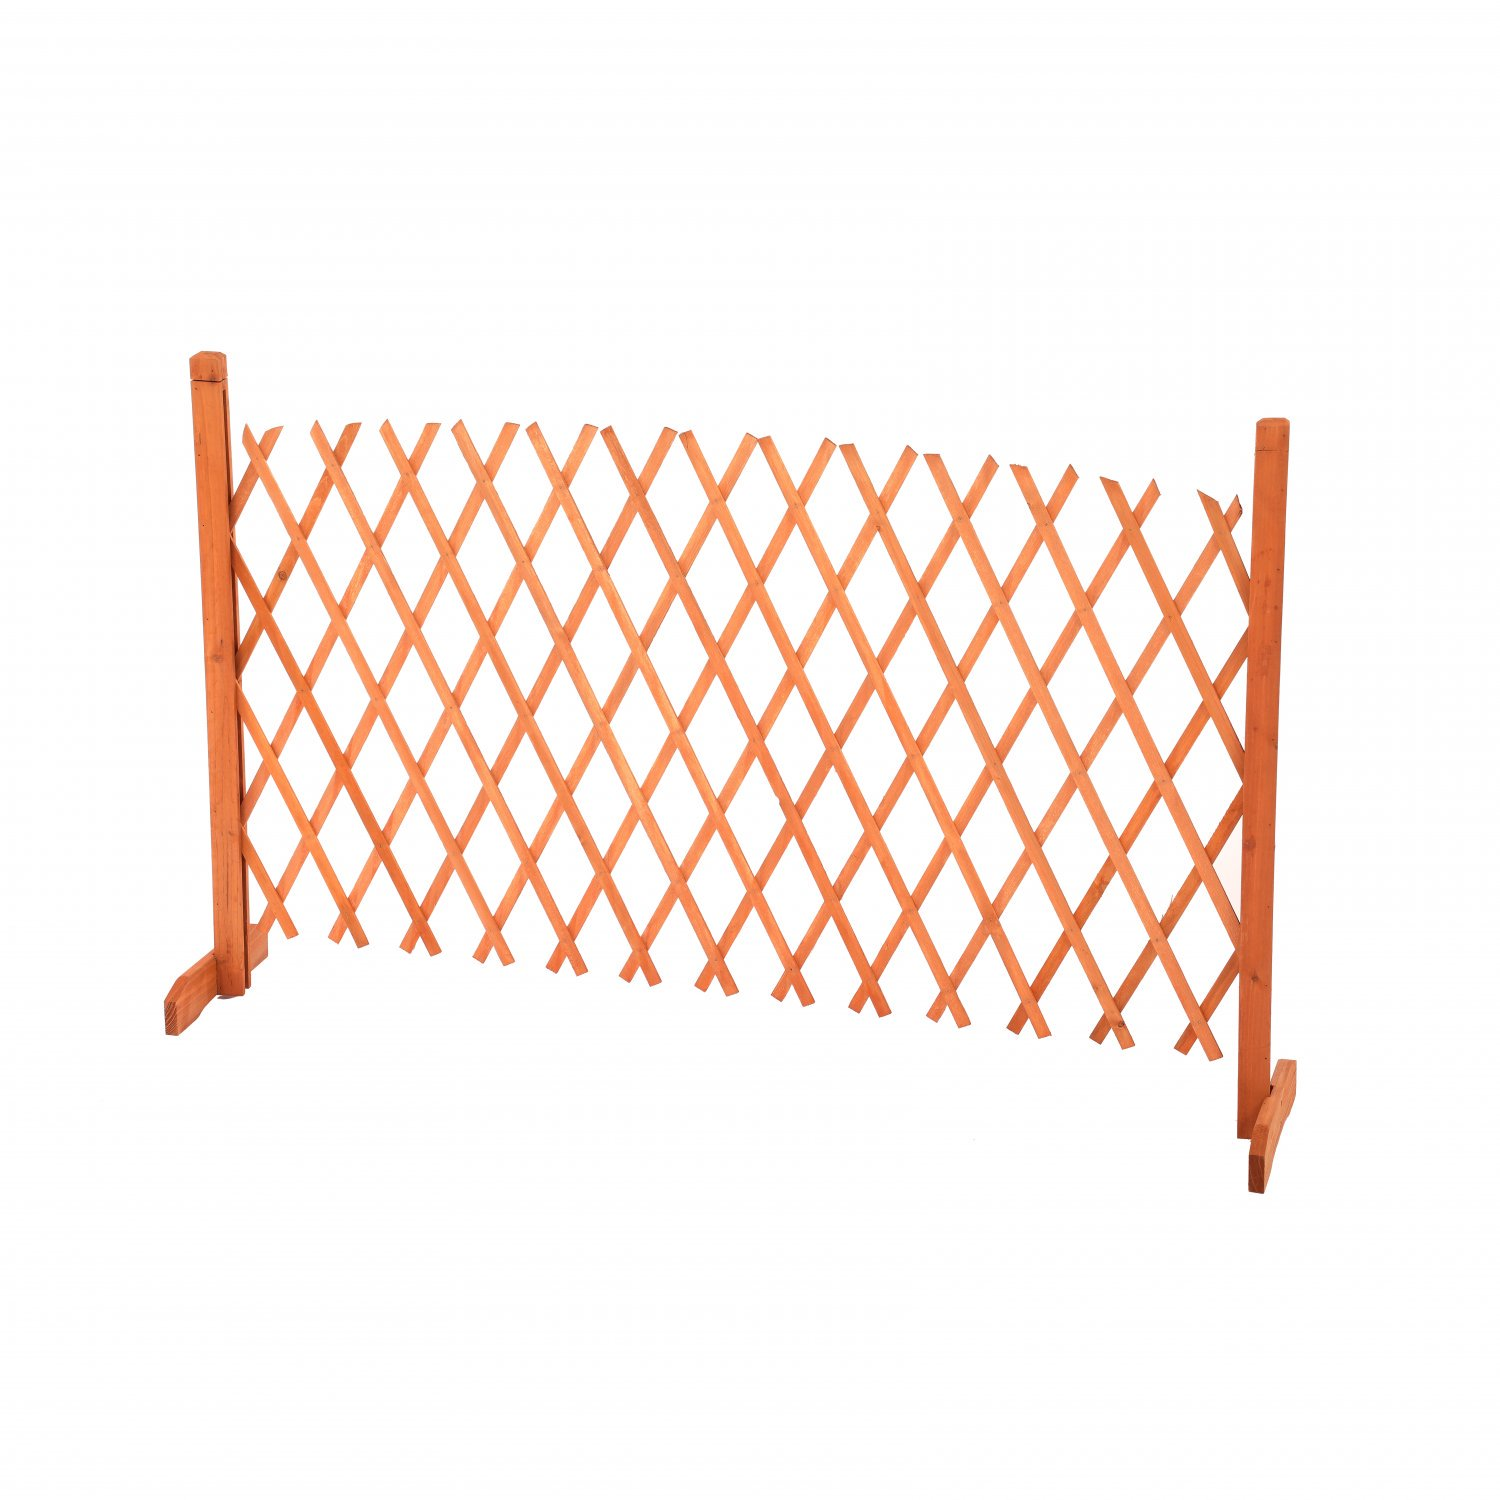 Arched Expanding Freestanding Wooden Trellis Fence Garden Screen